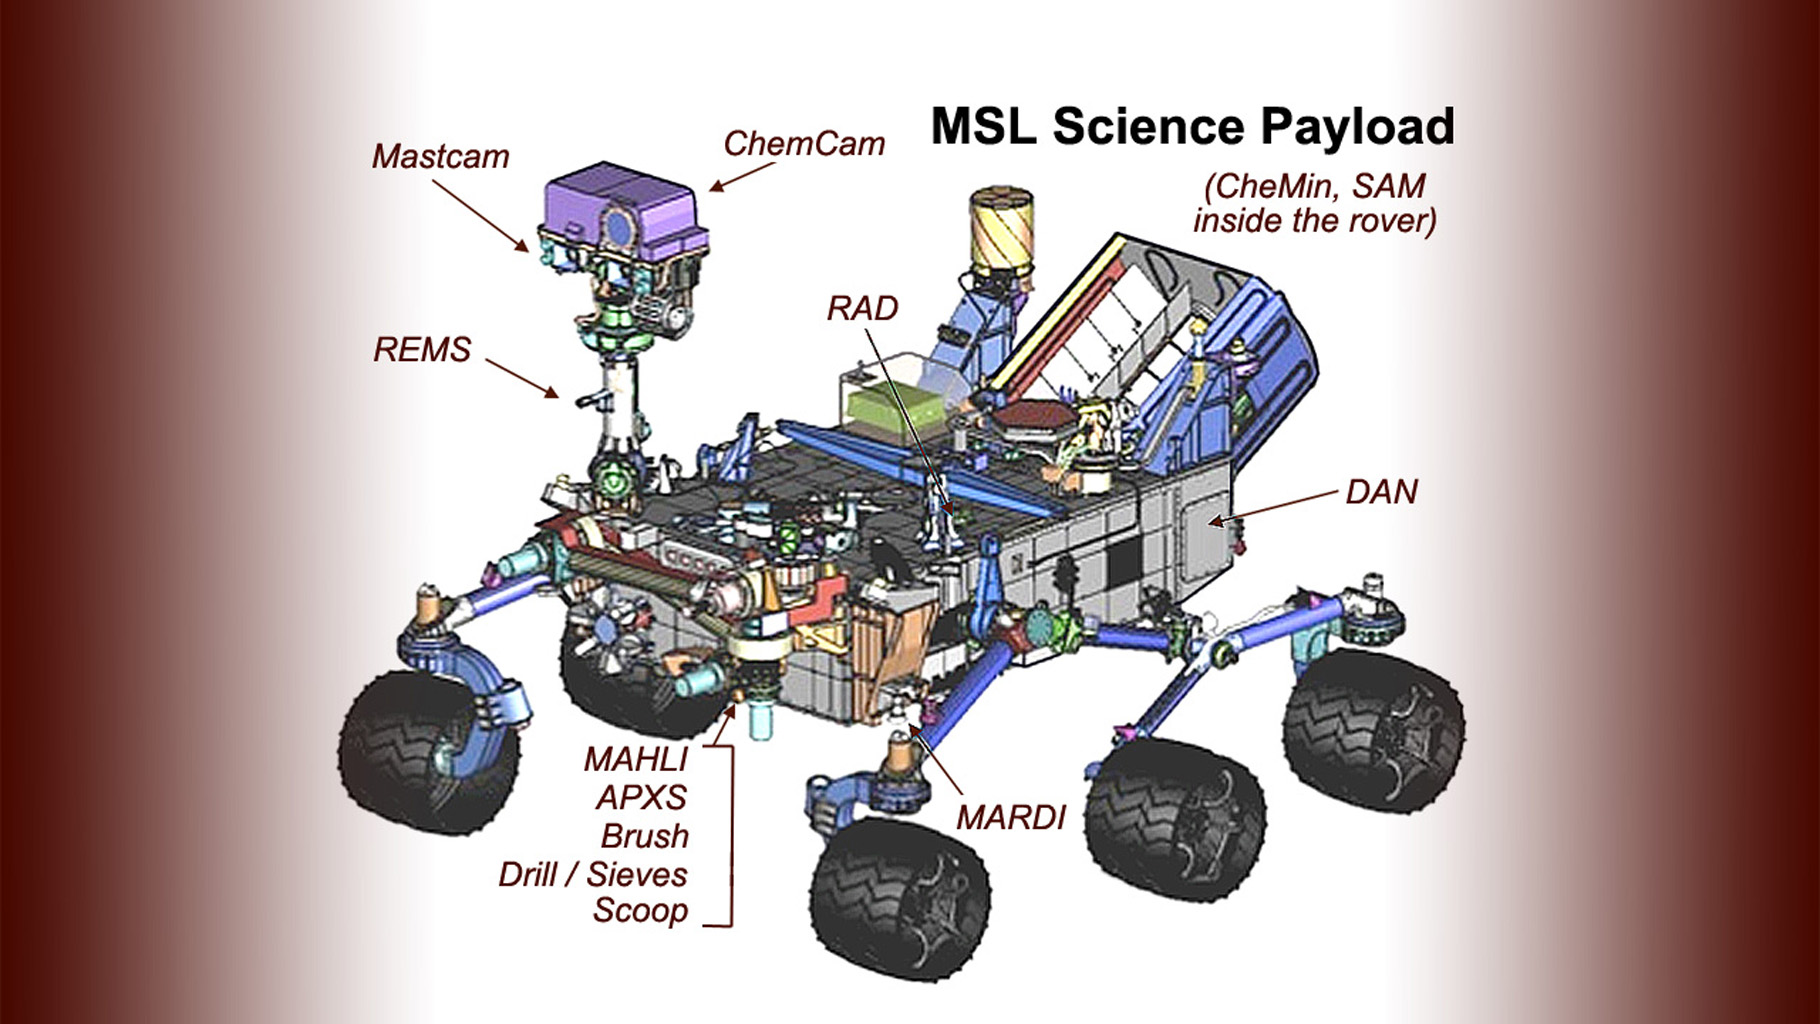 This drawing of the Mars Science Laboratory mission's rover, Curiosity, indicates the location of science instruments and some other tools on the car-size rover.